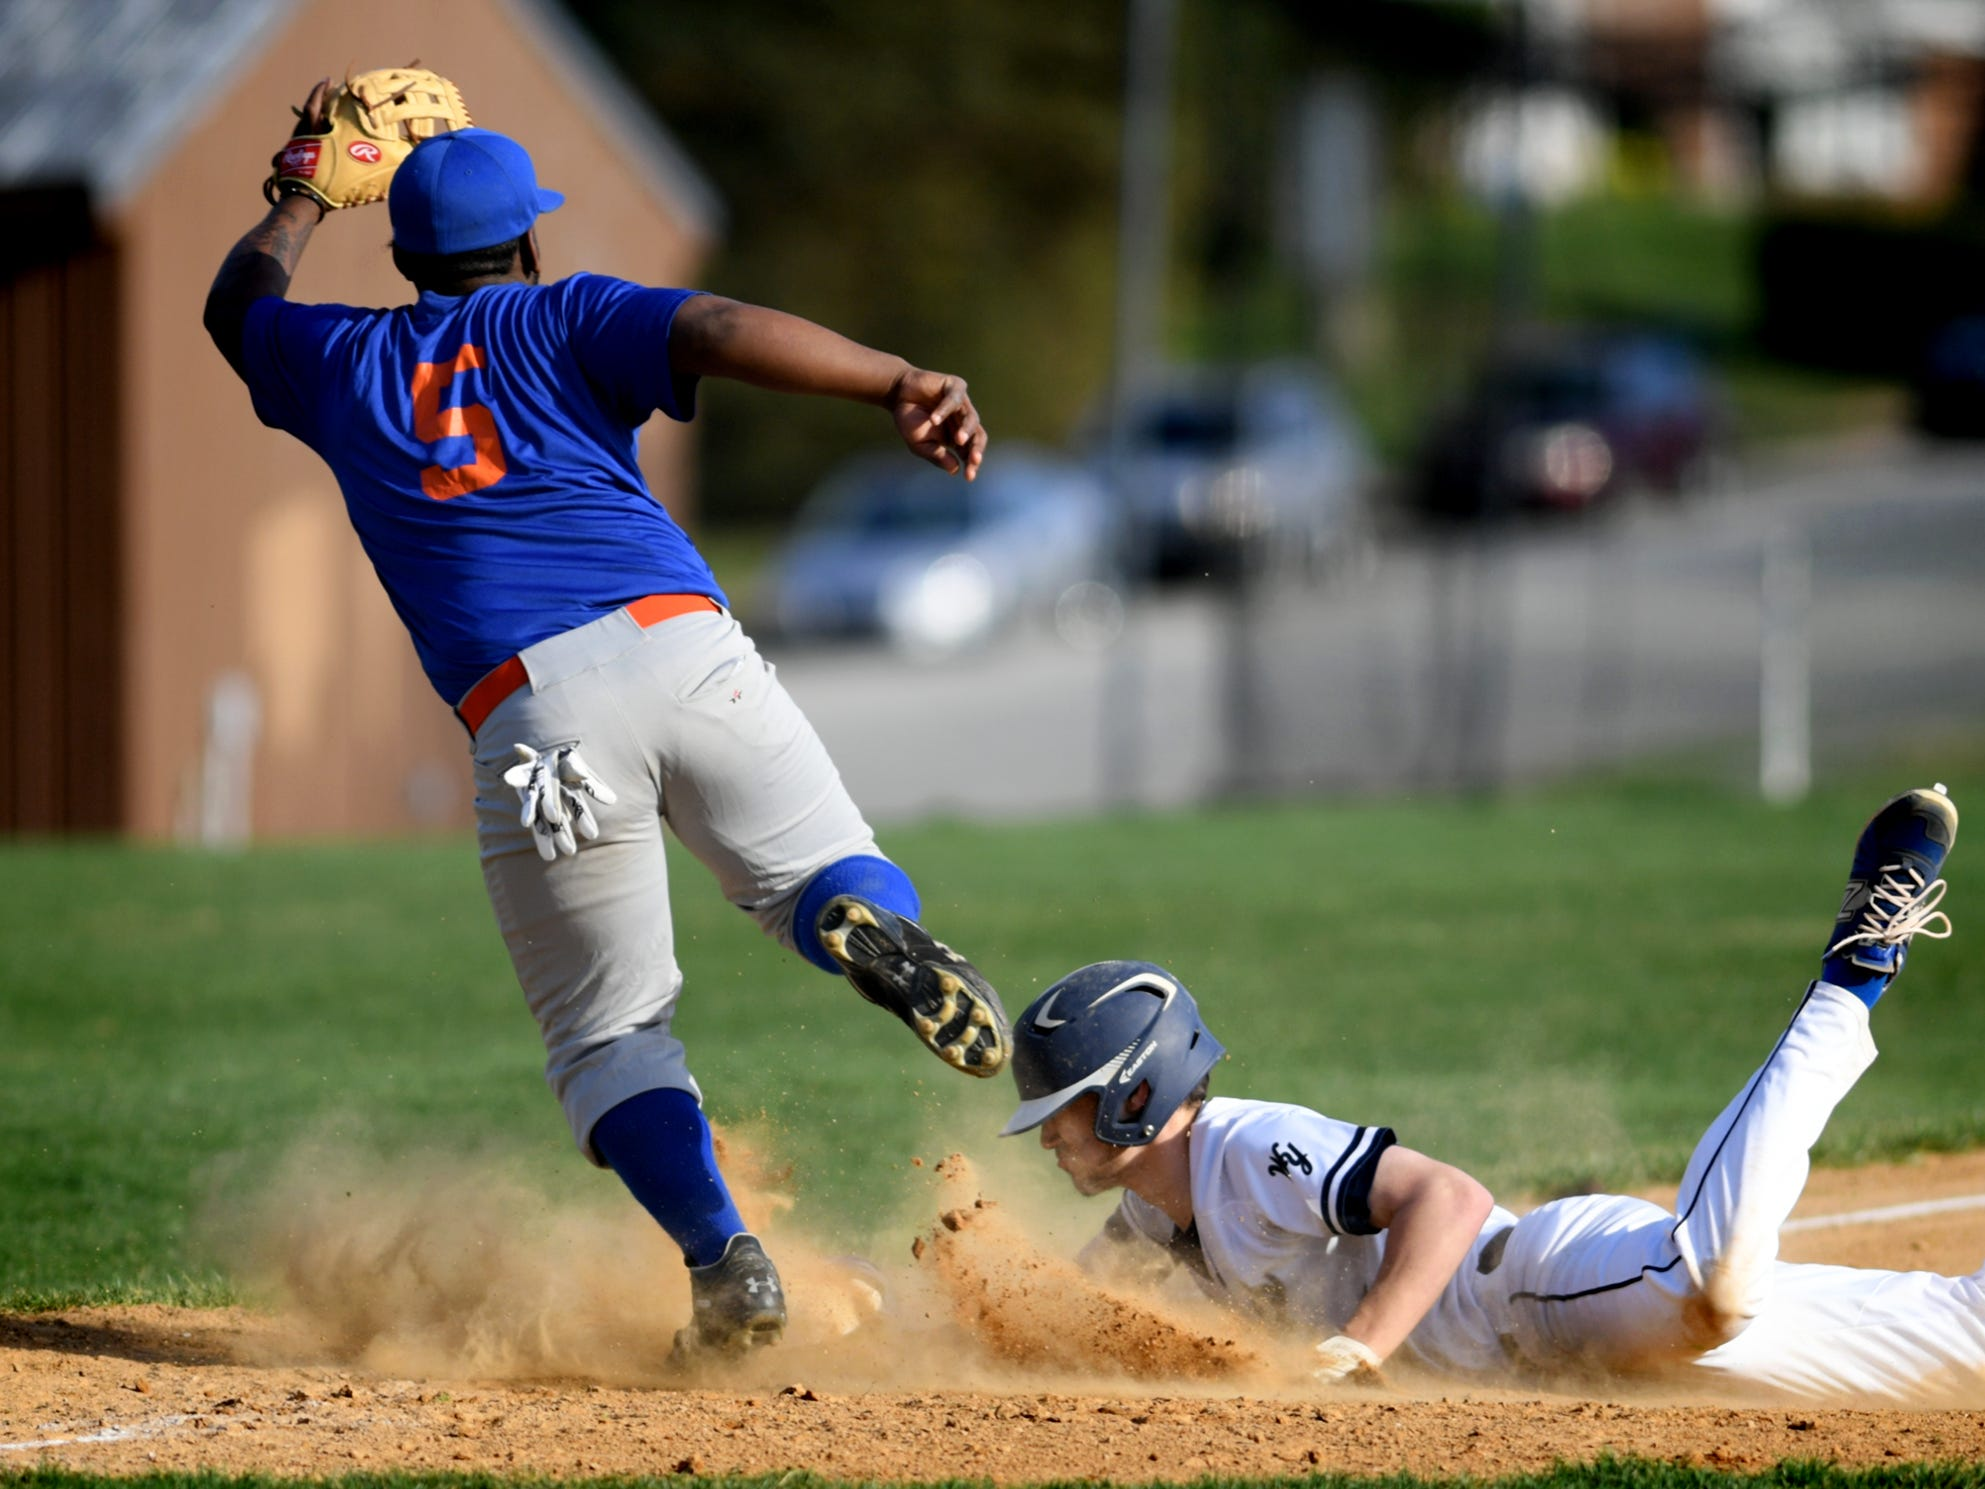 West York's Jeff Minot slides into third safely with a triple as York High's Francis Rudecendo reaches for the throw during action at Shiloh Wednesday, April 10, 2019. Bill Kalina photo